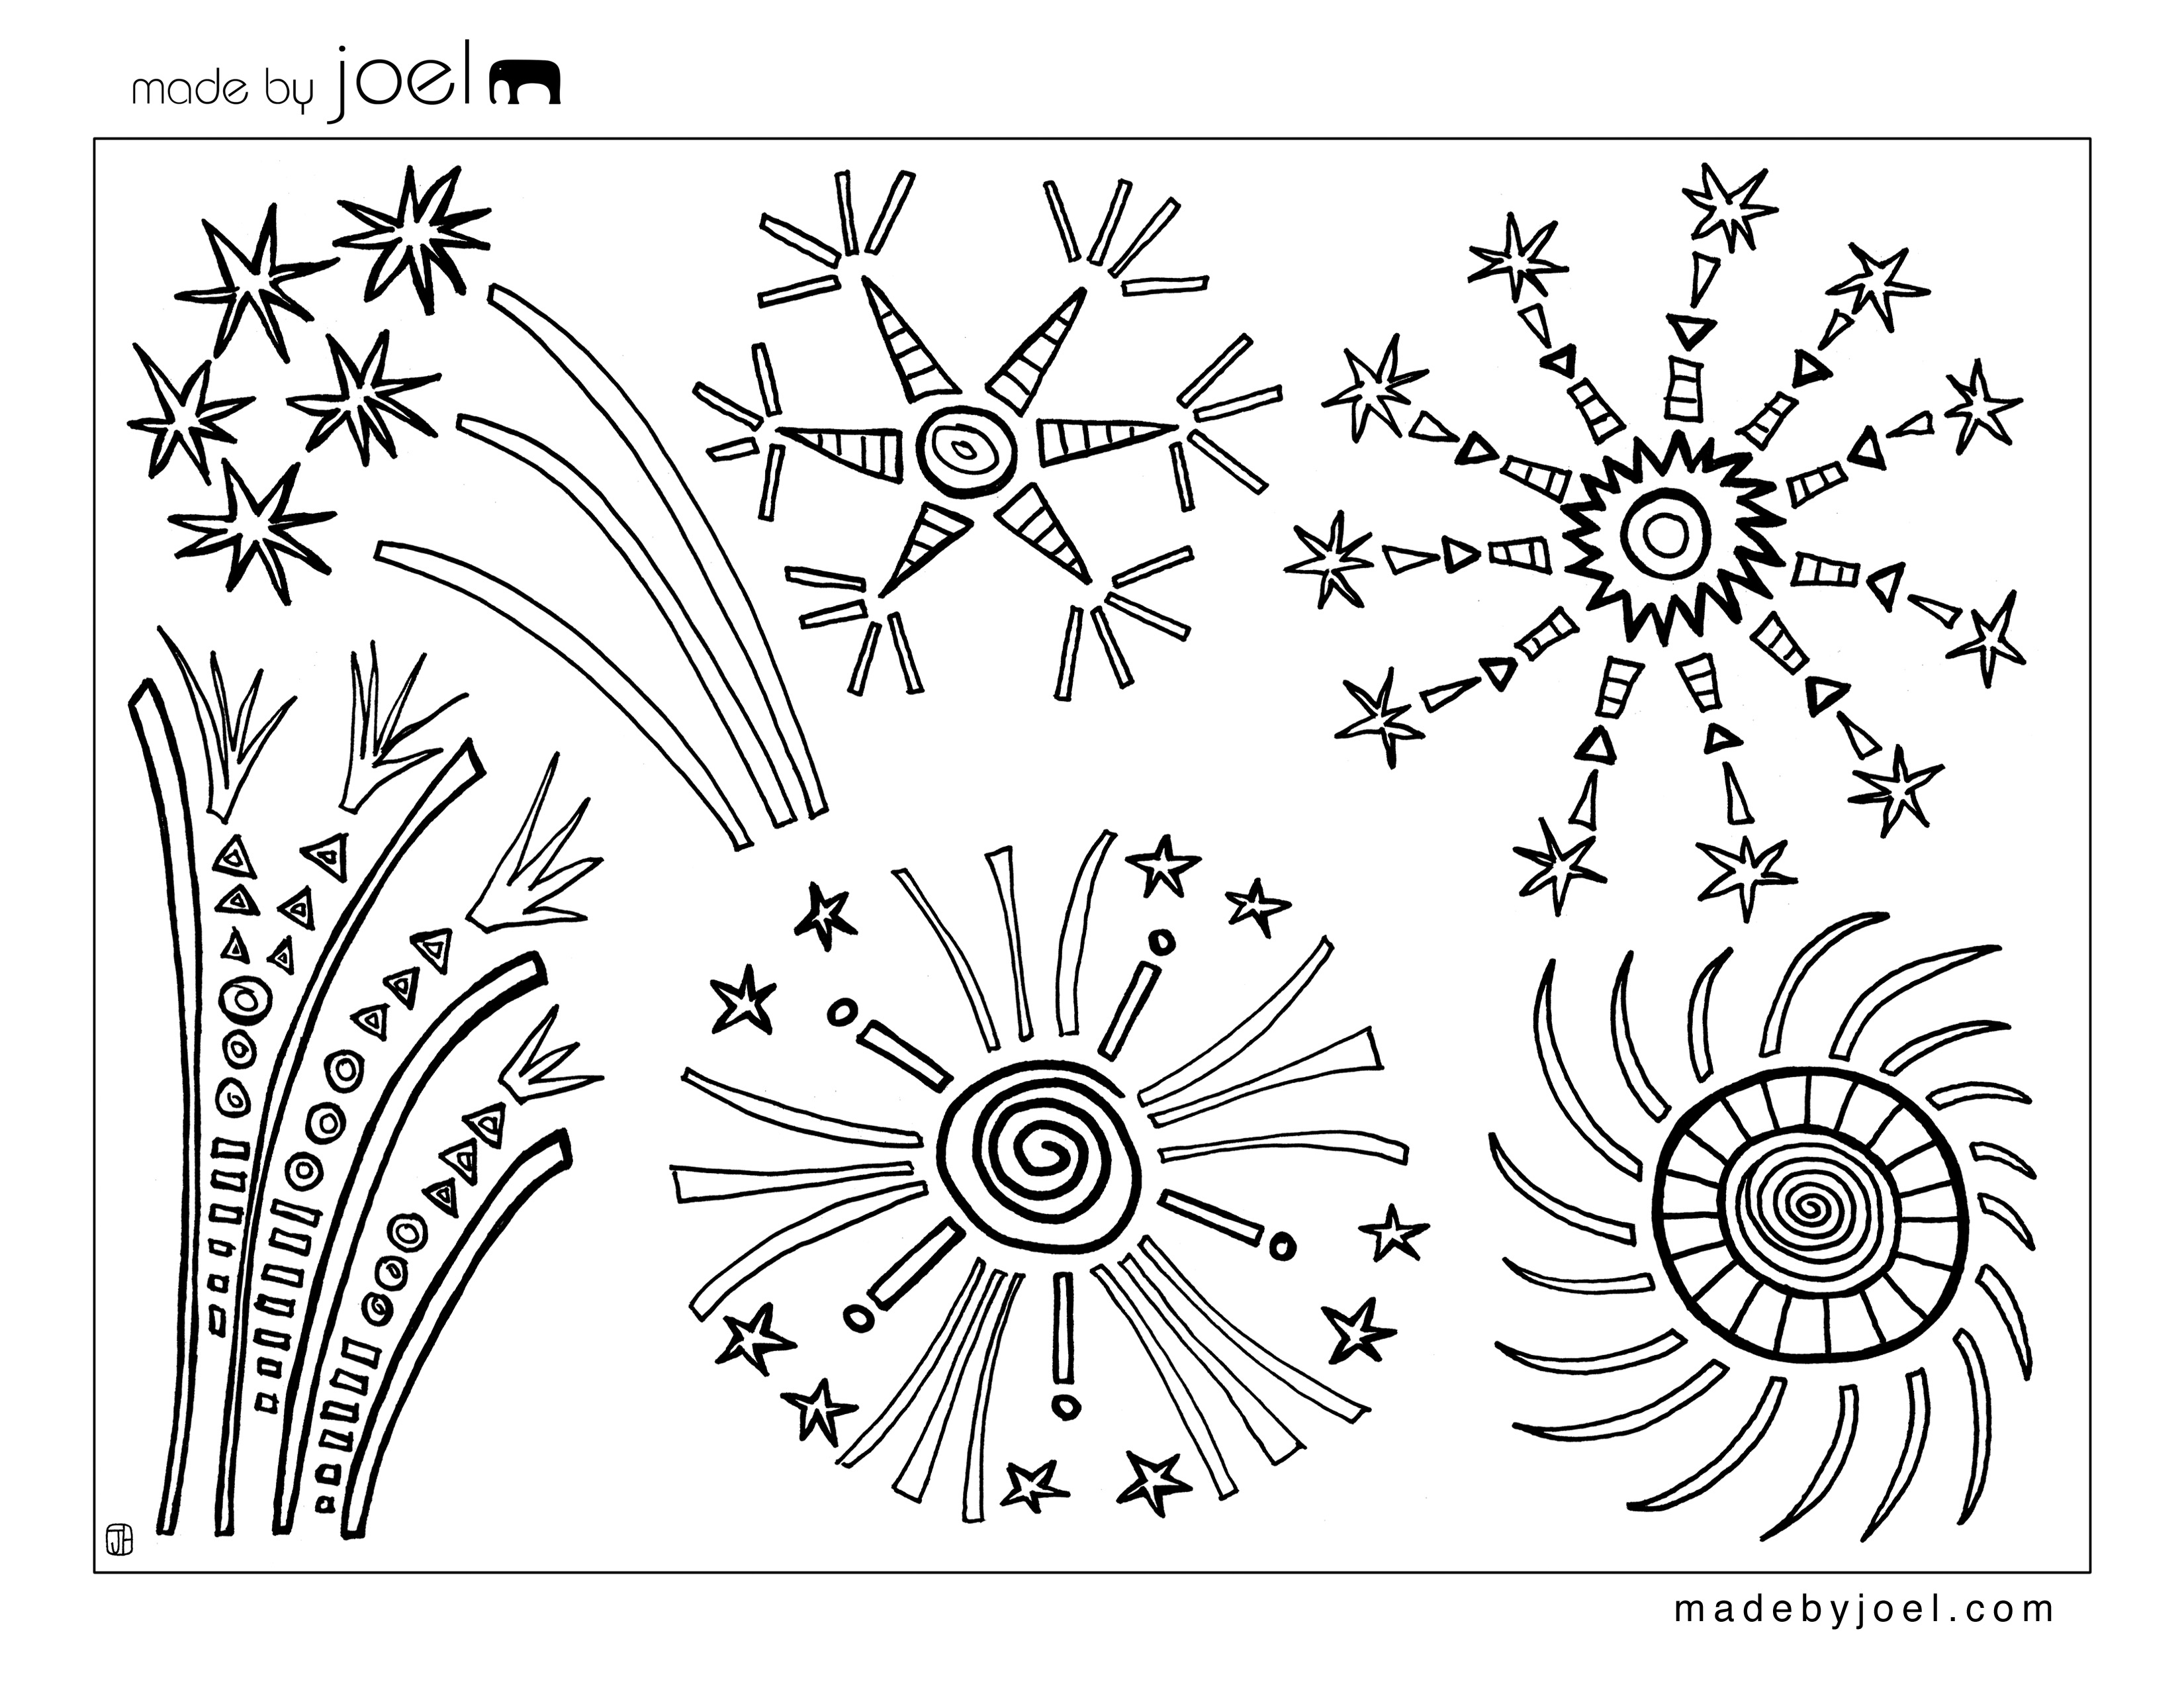 3300x2550 Made By Joel 4th Of July Fireworks Coloring Sheet